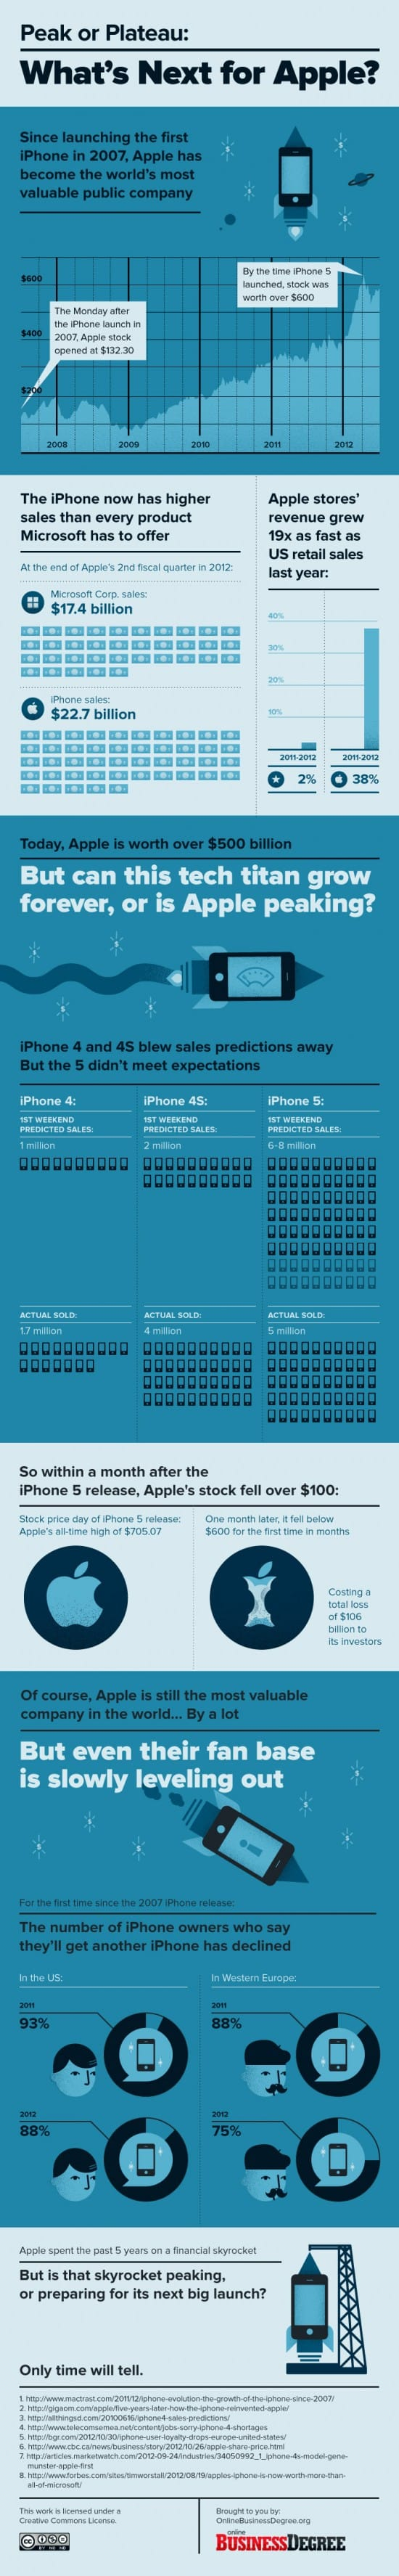 infographic-whats-next-for-apple